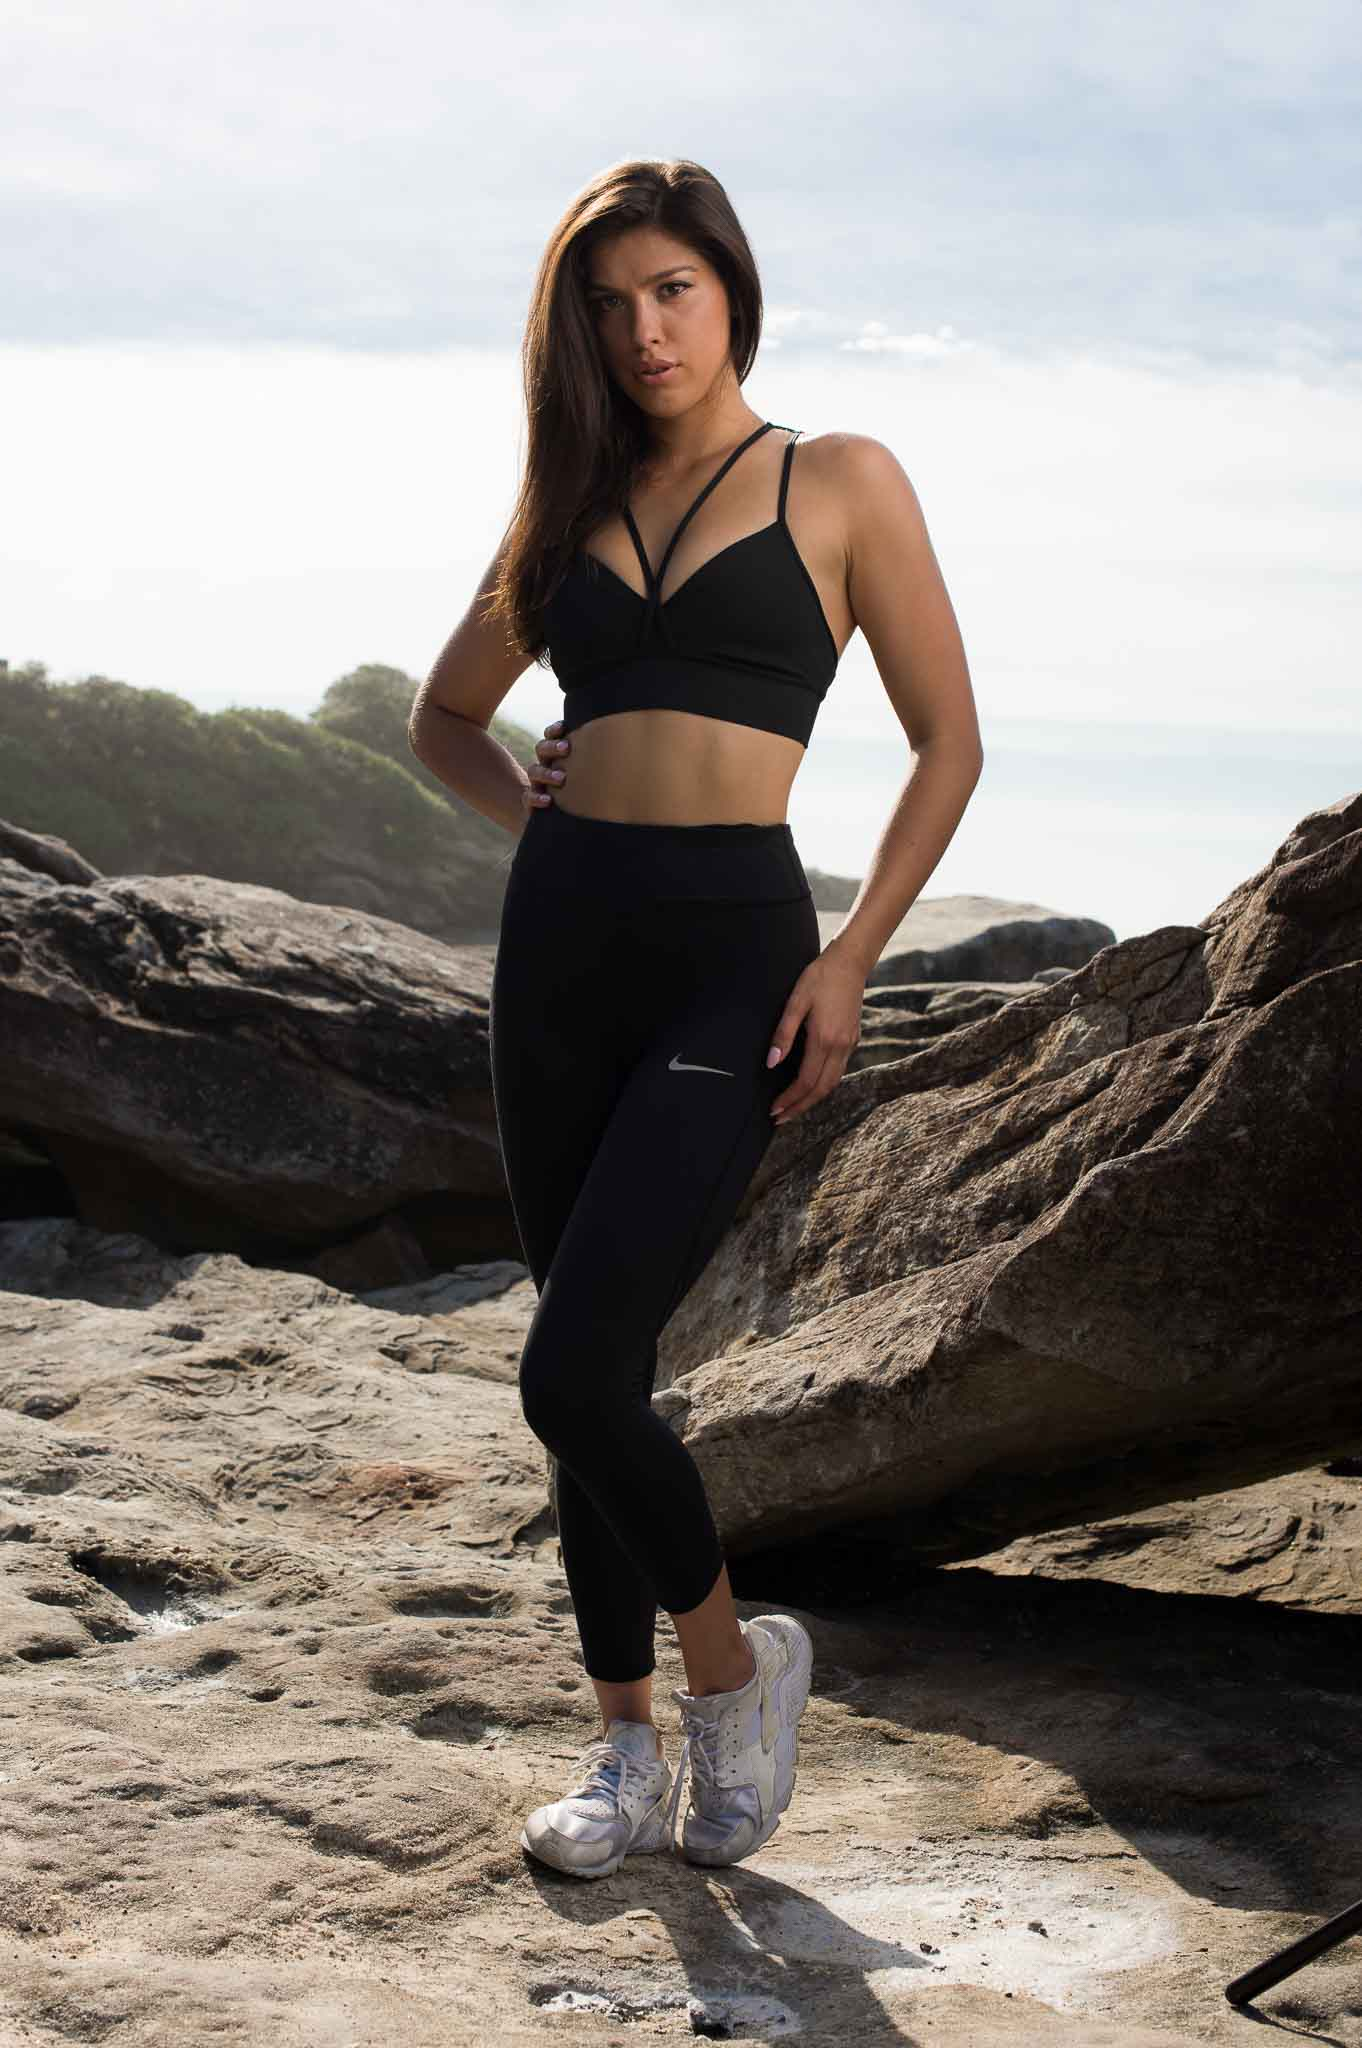 Edina at Sidneys Bronti beach during her fitness shoot